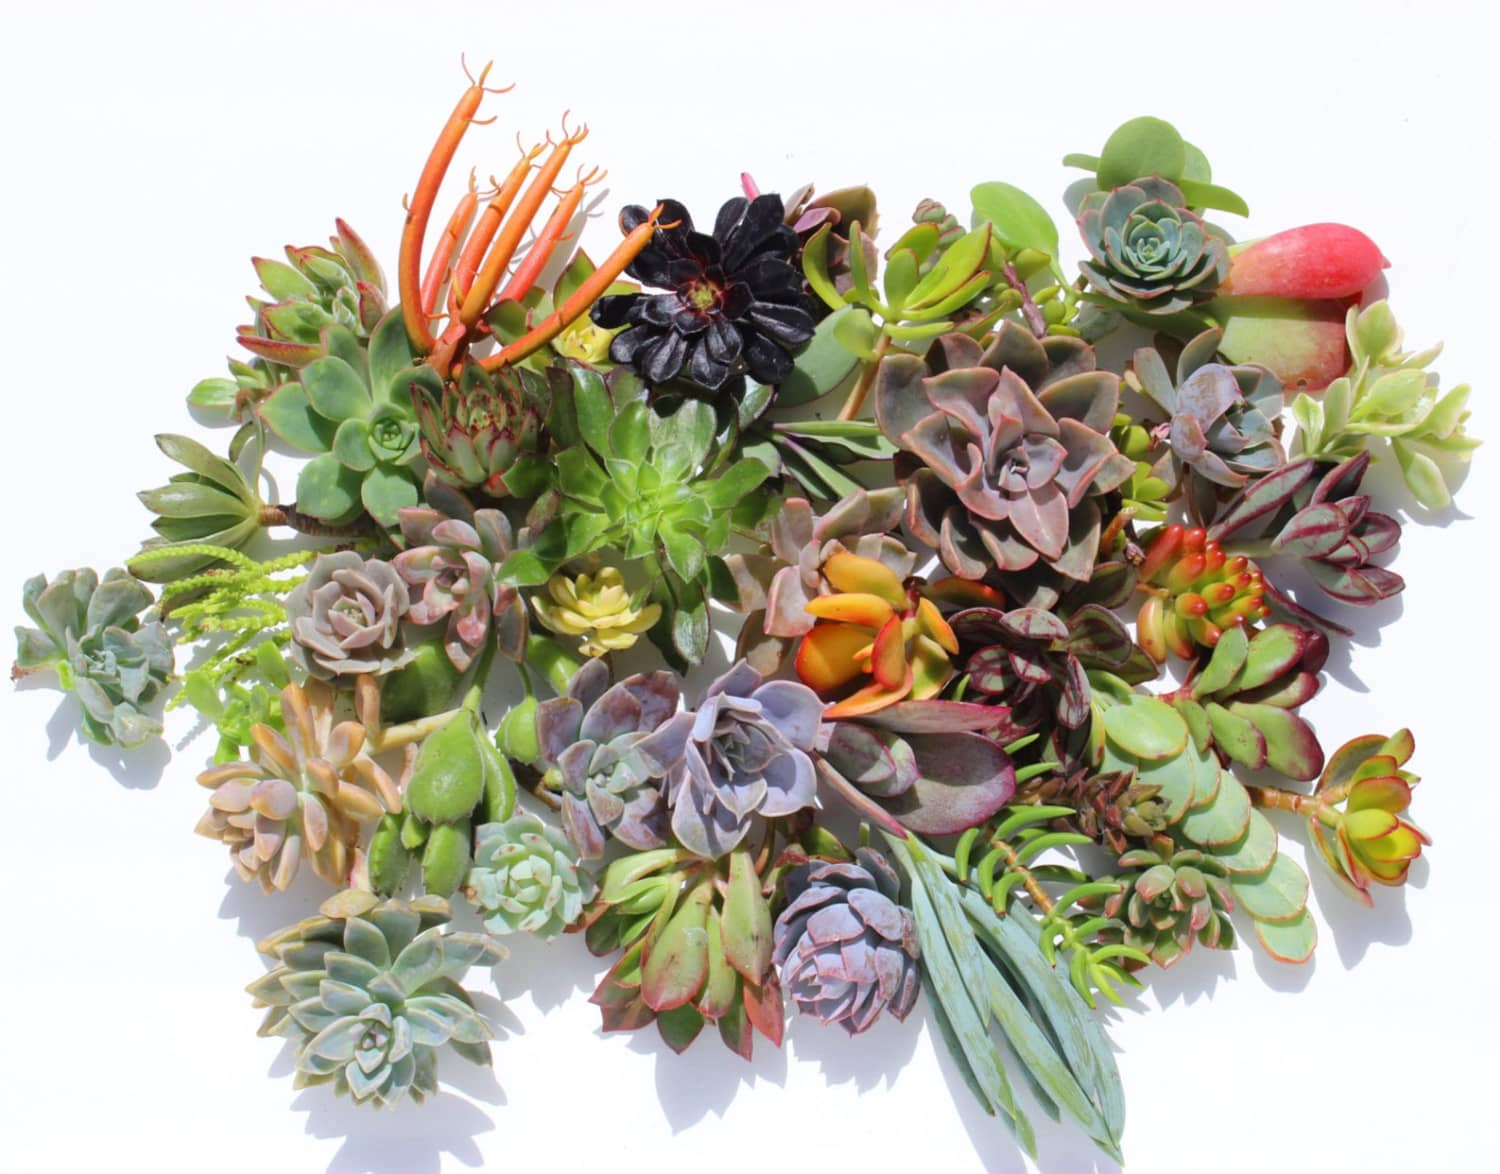 Etsy Has a Succulent Starter Kit That Will Delight Plant Parents